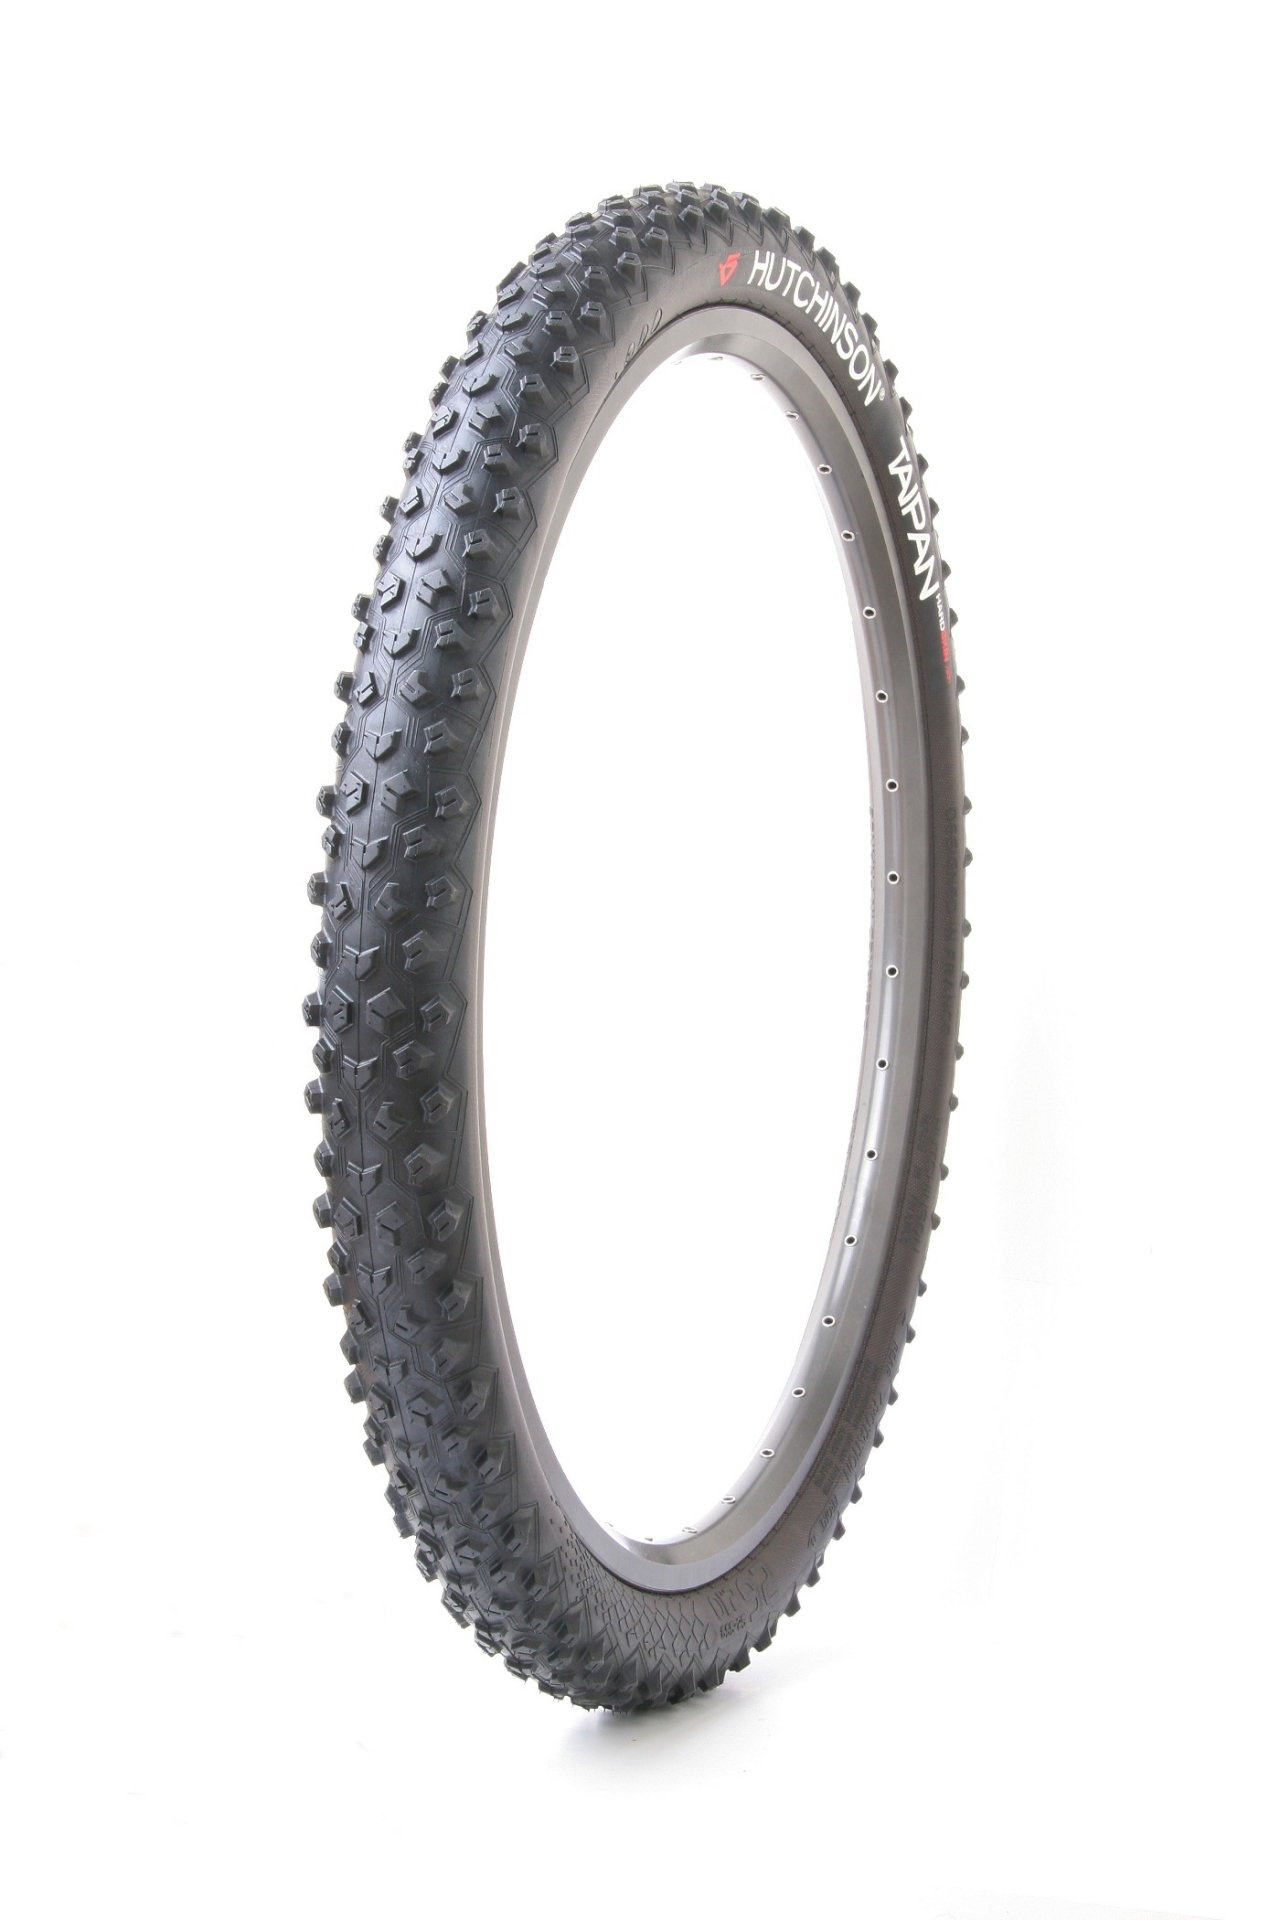 Pneu 27.5 x 2.35 Hutchinson Taipan Tubeless Ready E-Bike TT / TL